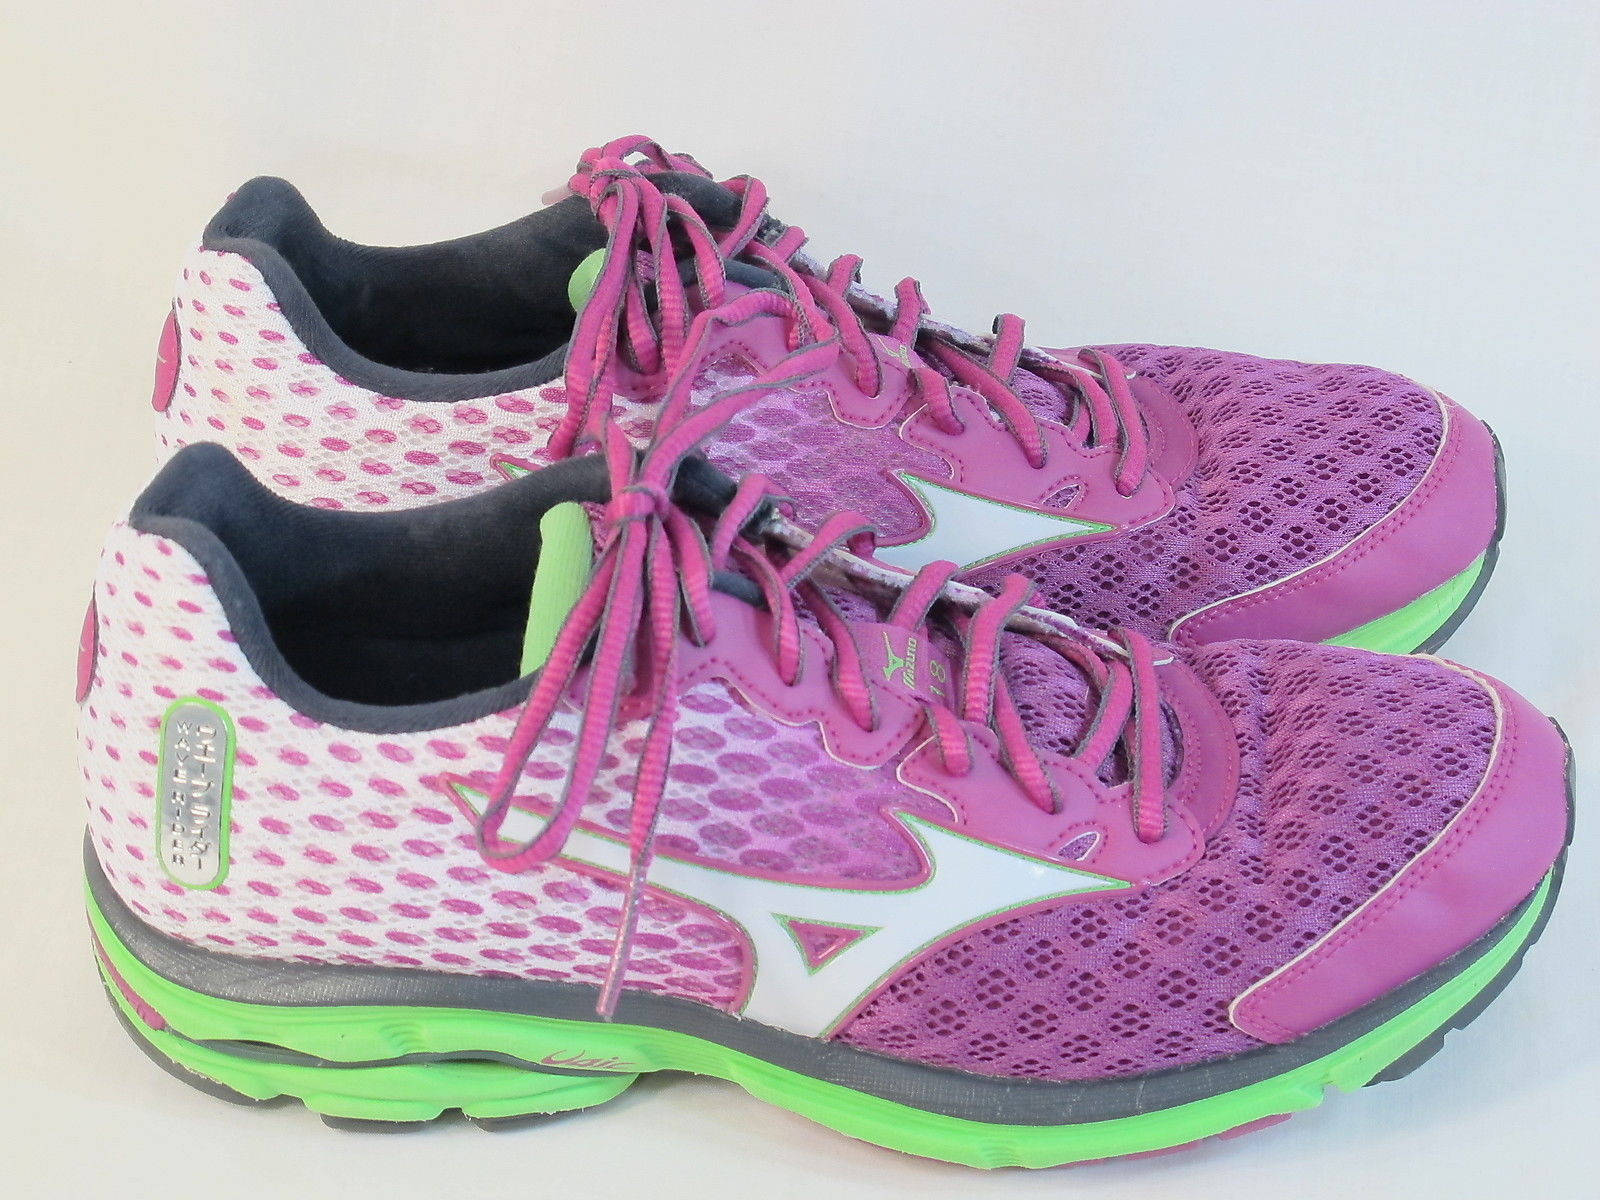 Mizuno Wave Rider 18 Running Shoes Women's Size 9.5 US Excellent Plus  Condition